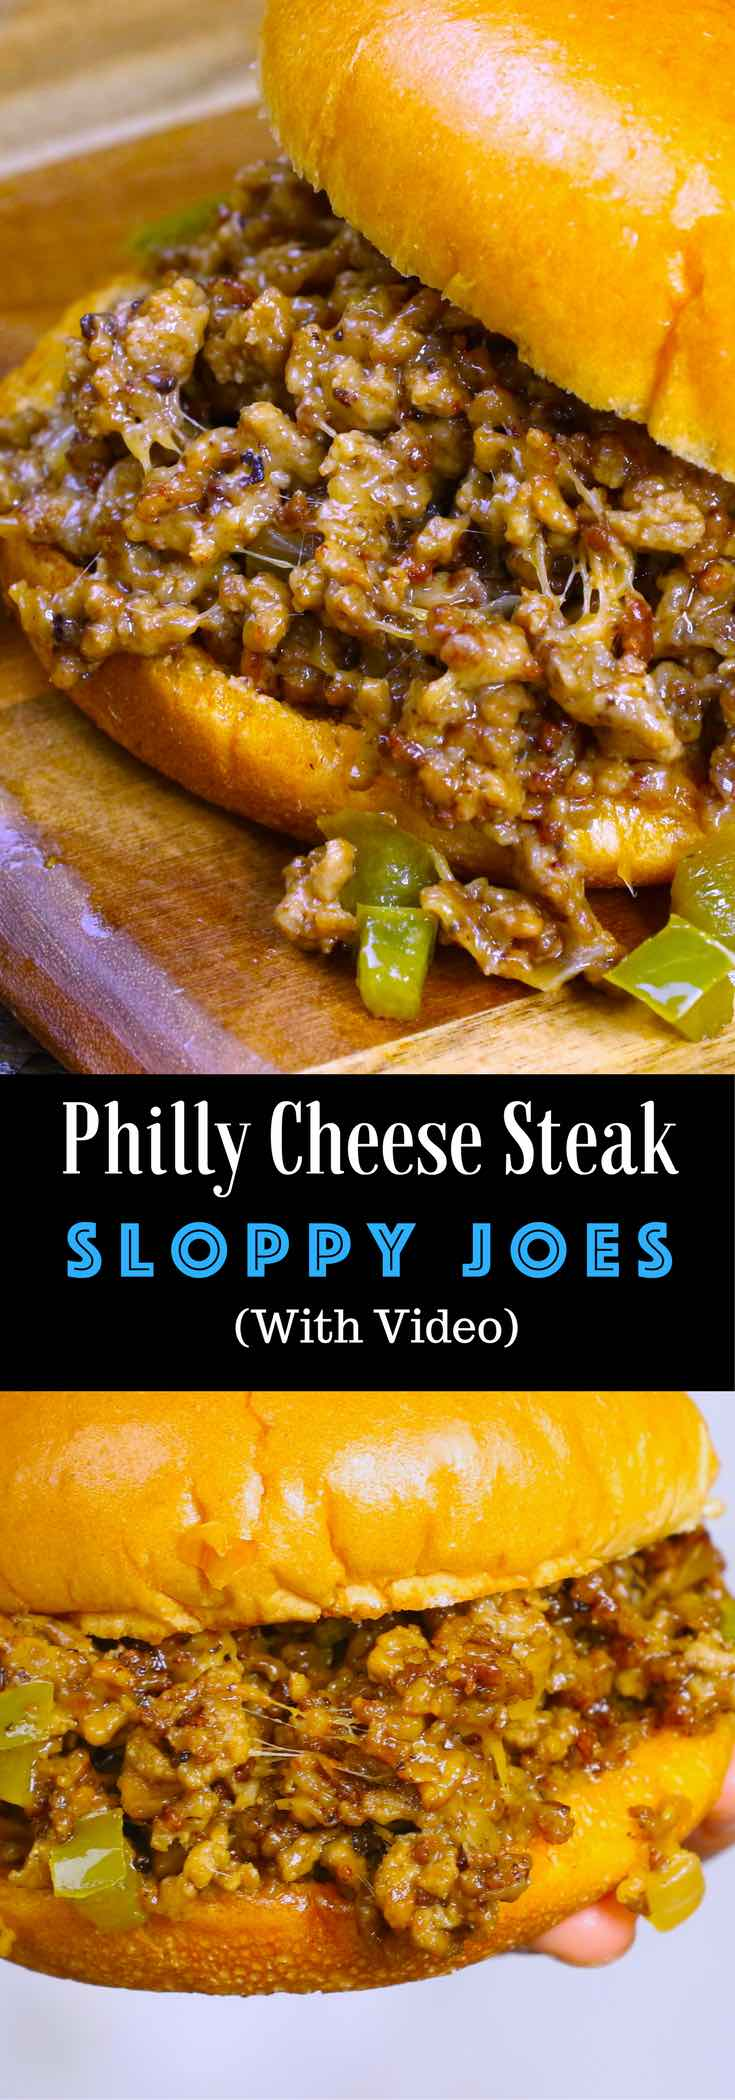 The easiest and most unbelievably delicious Philly Cheesesteak Sloppy Joes! And it'll be on your dinner table in just 20 minutes. All you need is only a few simple ingredients: ground beef, beef broth, Worcestershire sauce, catchup, cornstarch and hamburger buns. Quick and easy dinner or lunch recipe. Video recipe. | Tipbuzz.com